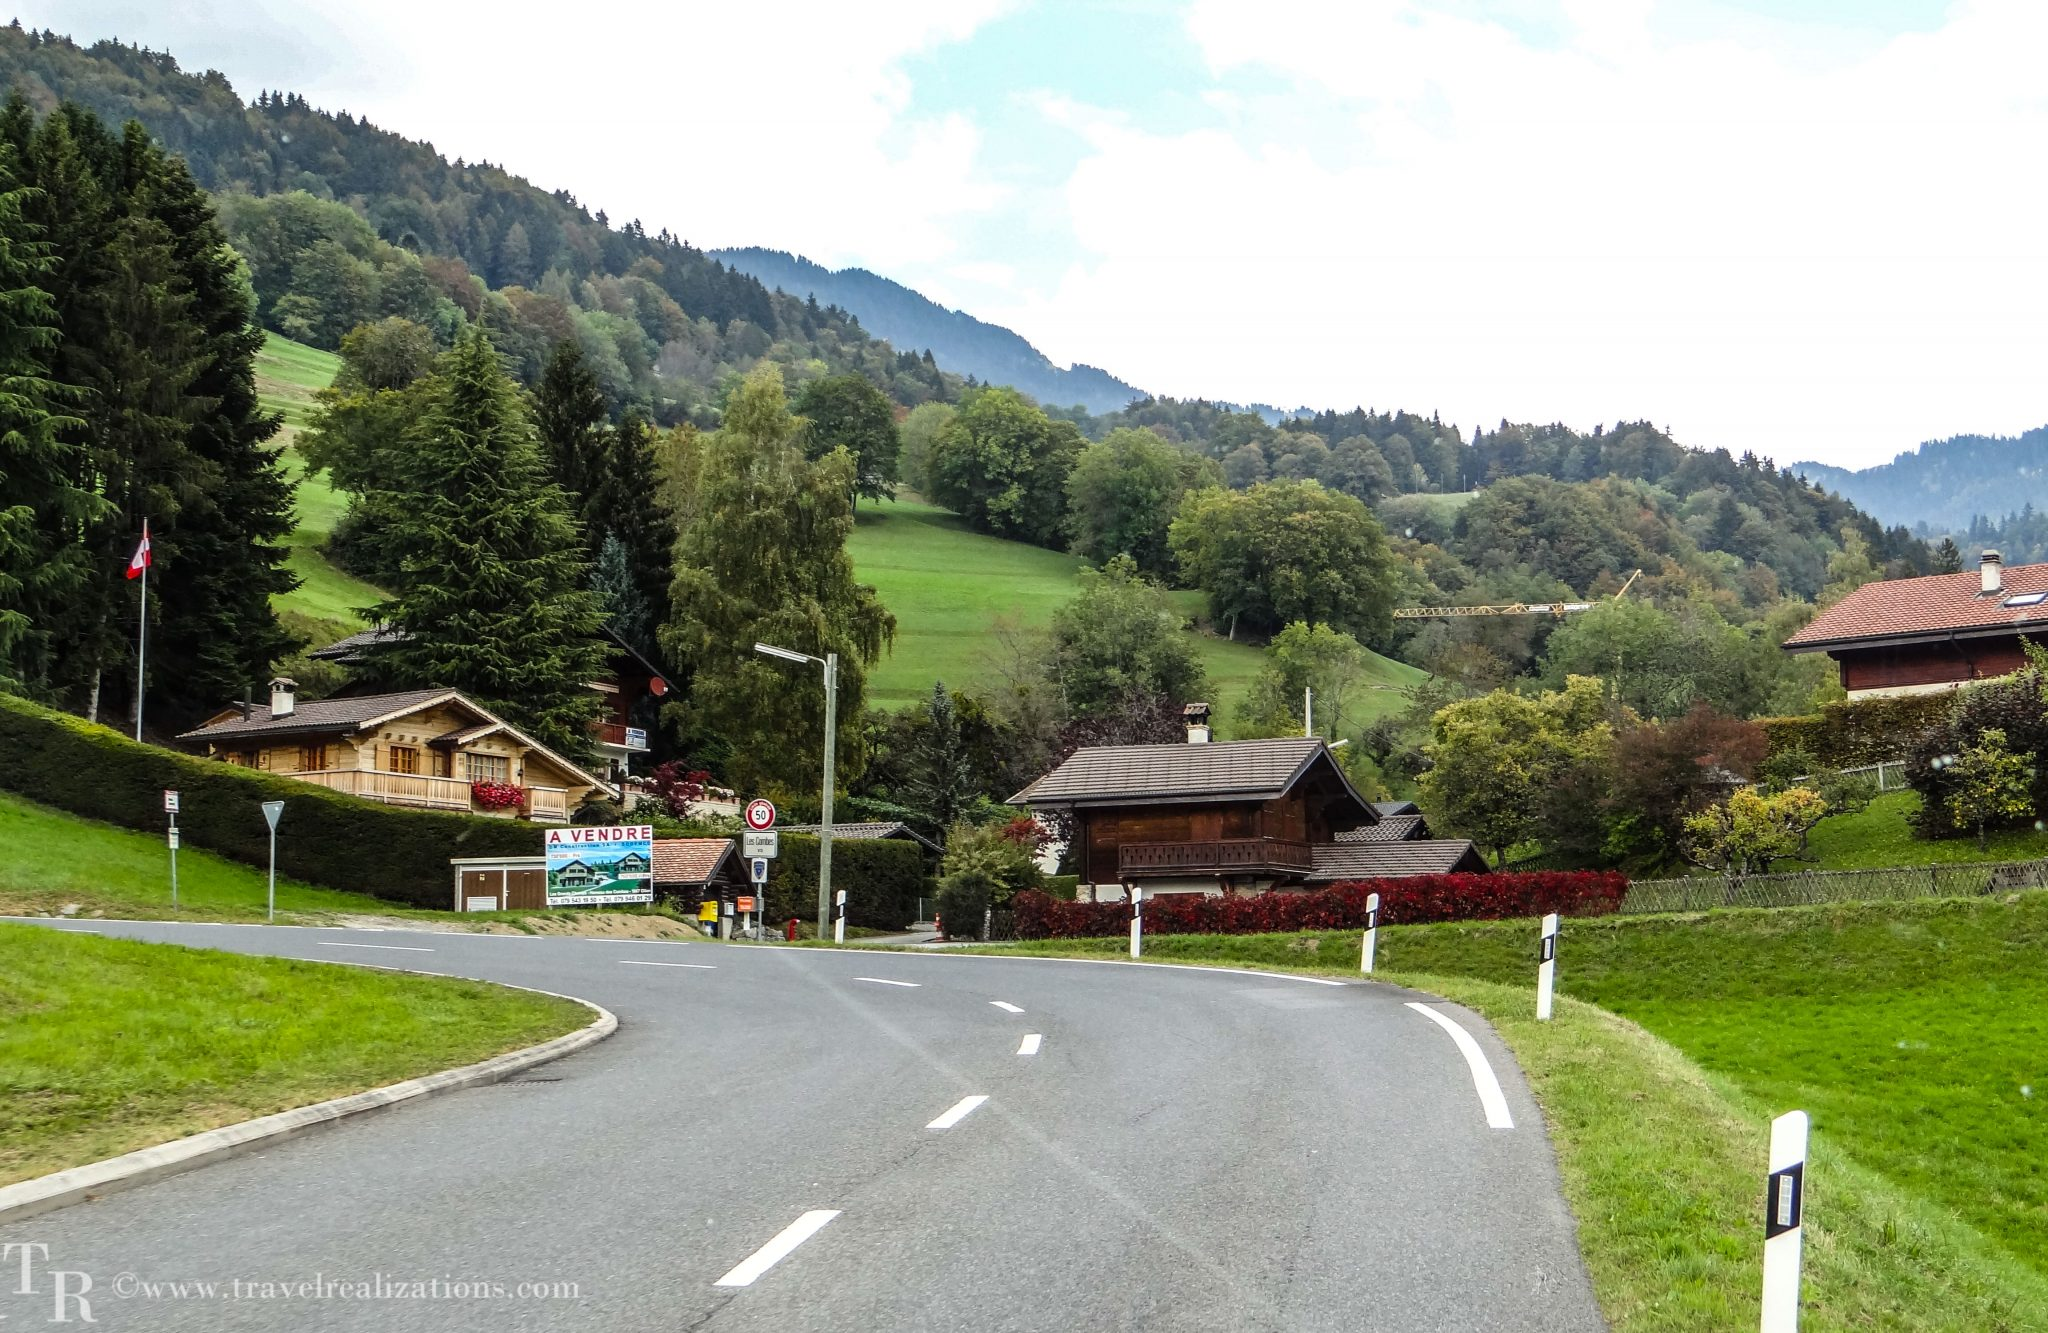 Villars-sur-Ollon - A beautiful Swiss village!